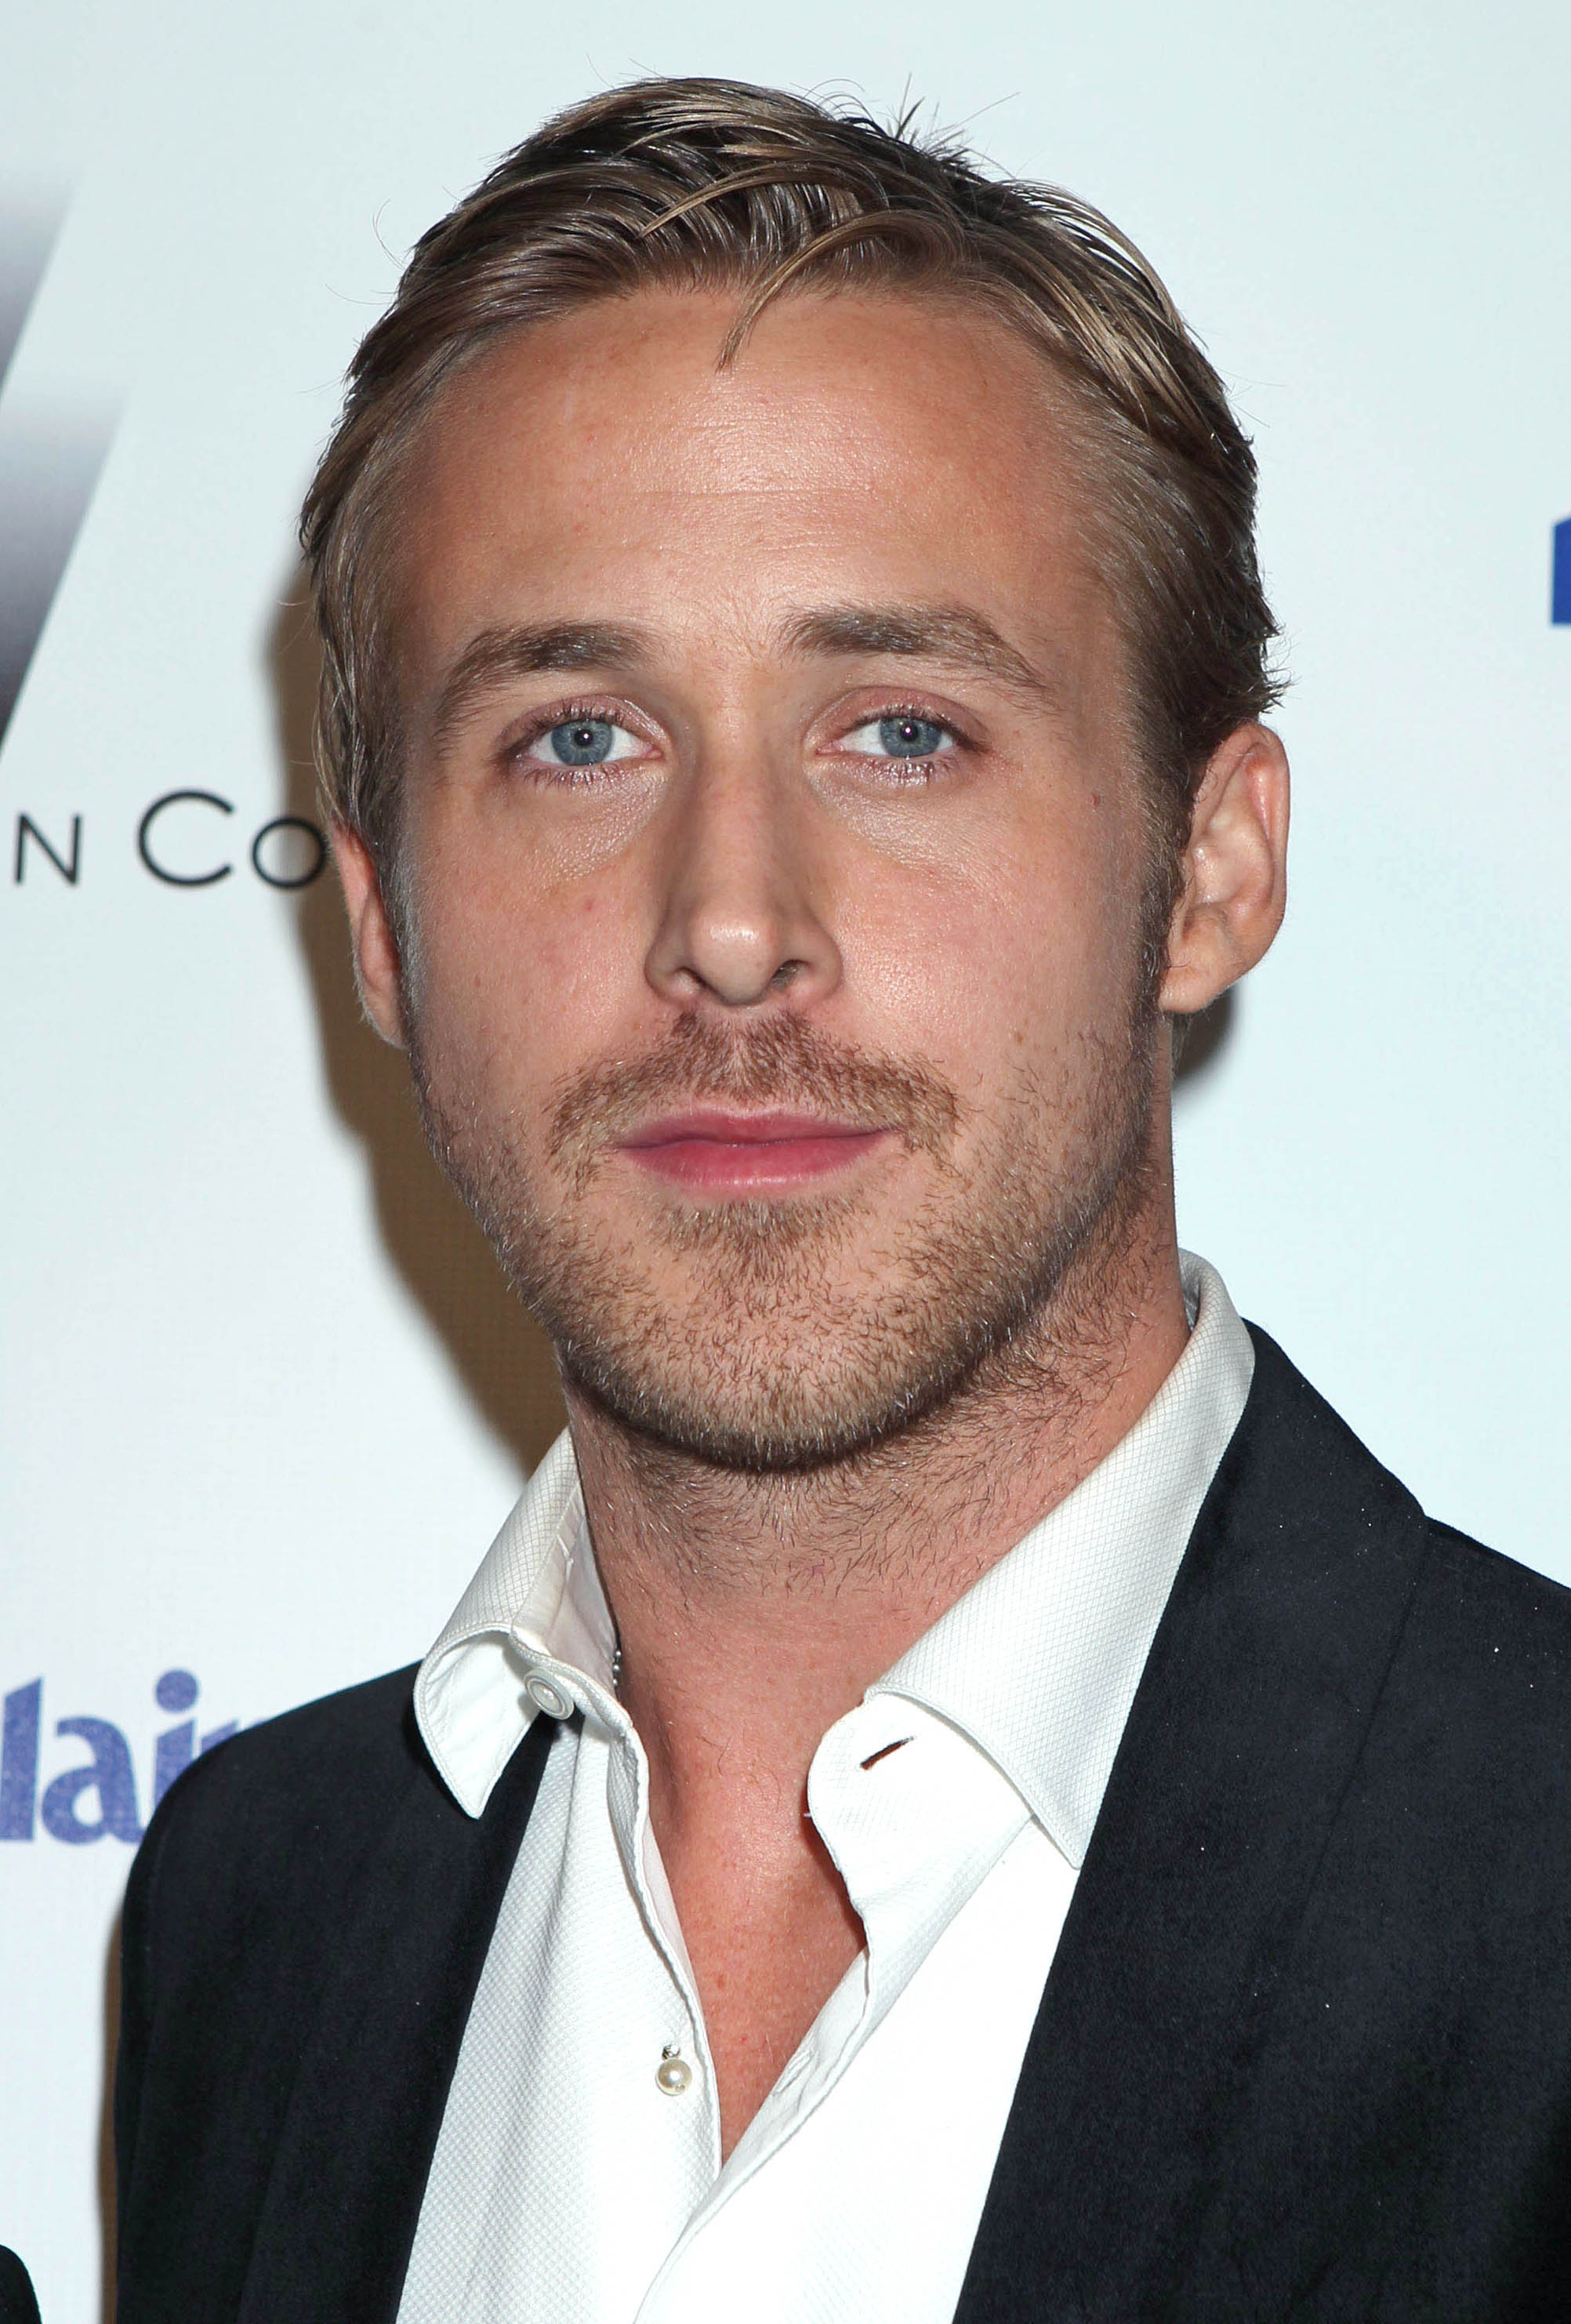 Ryan Gosling quits new 'Logan's Run' movie - NME